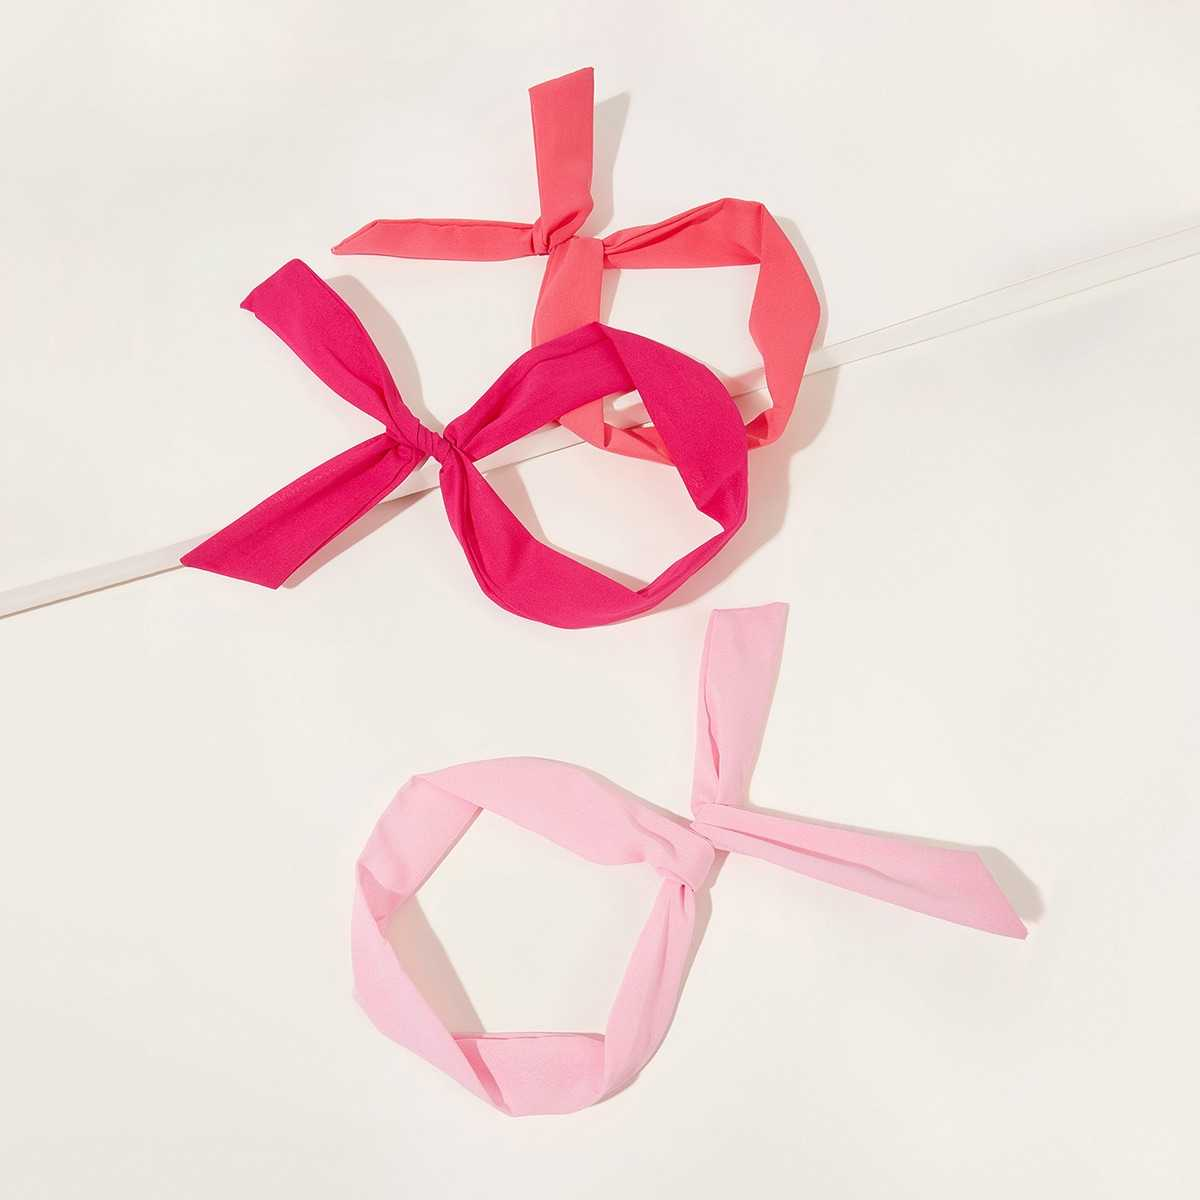 Bow Knot Decor Headband 3pcs in Multicolor by ROMWE on GOOFASH